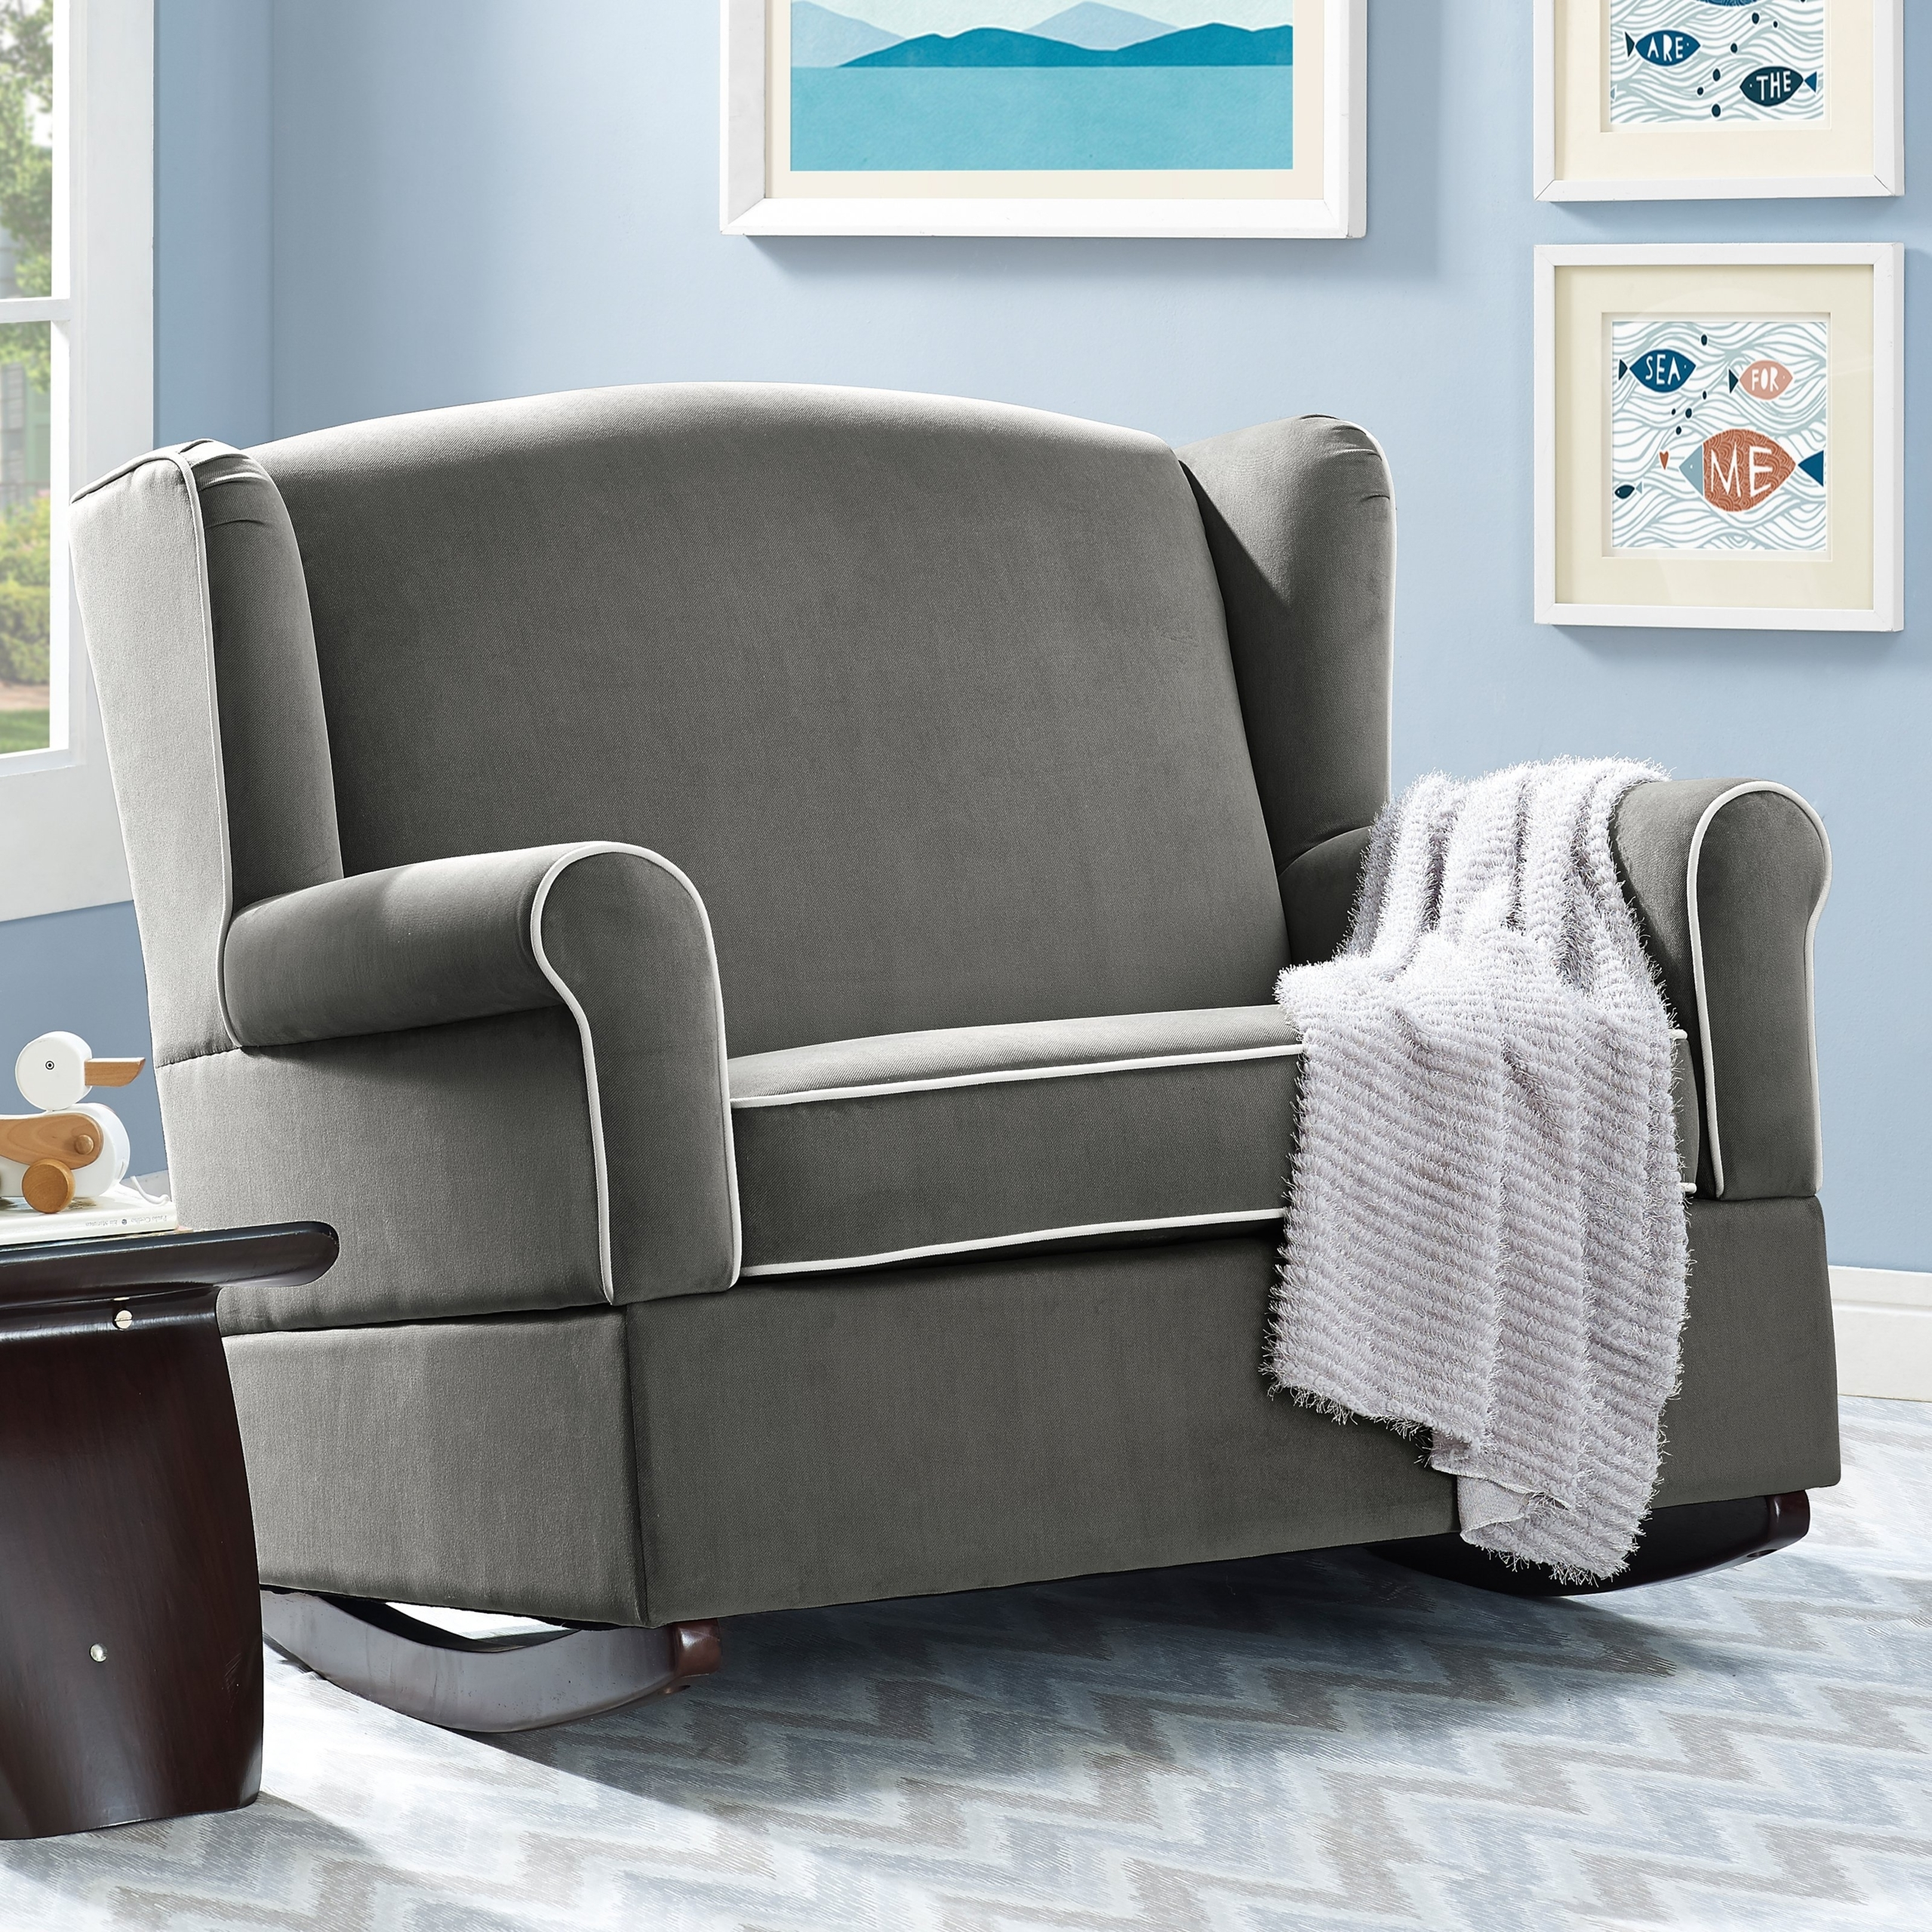 Superb Baby Relax Lainey Wingback Chair And A Half Rocker